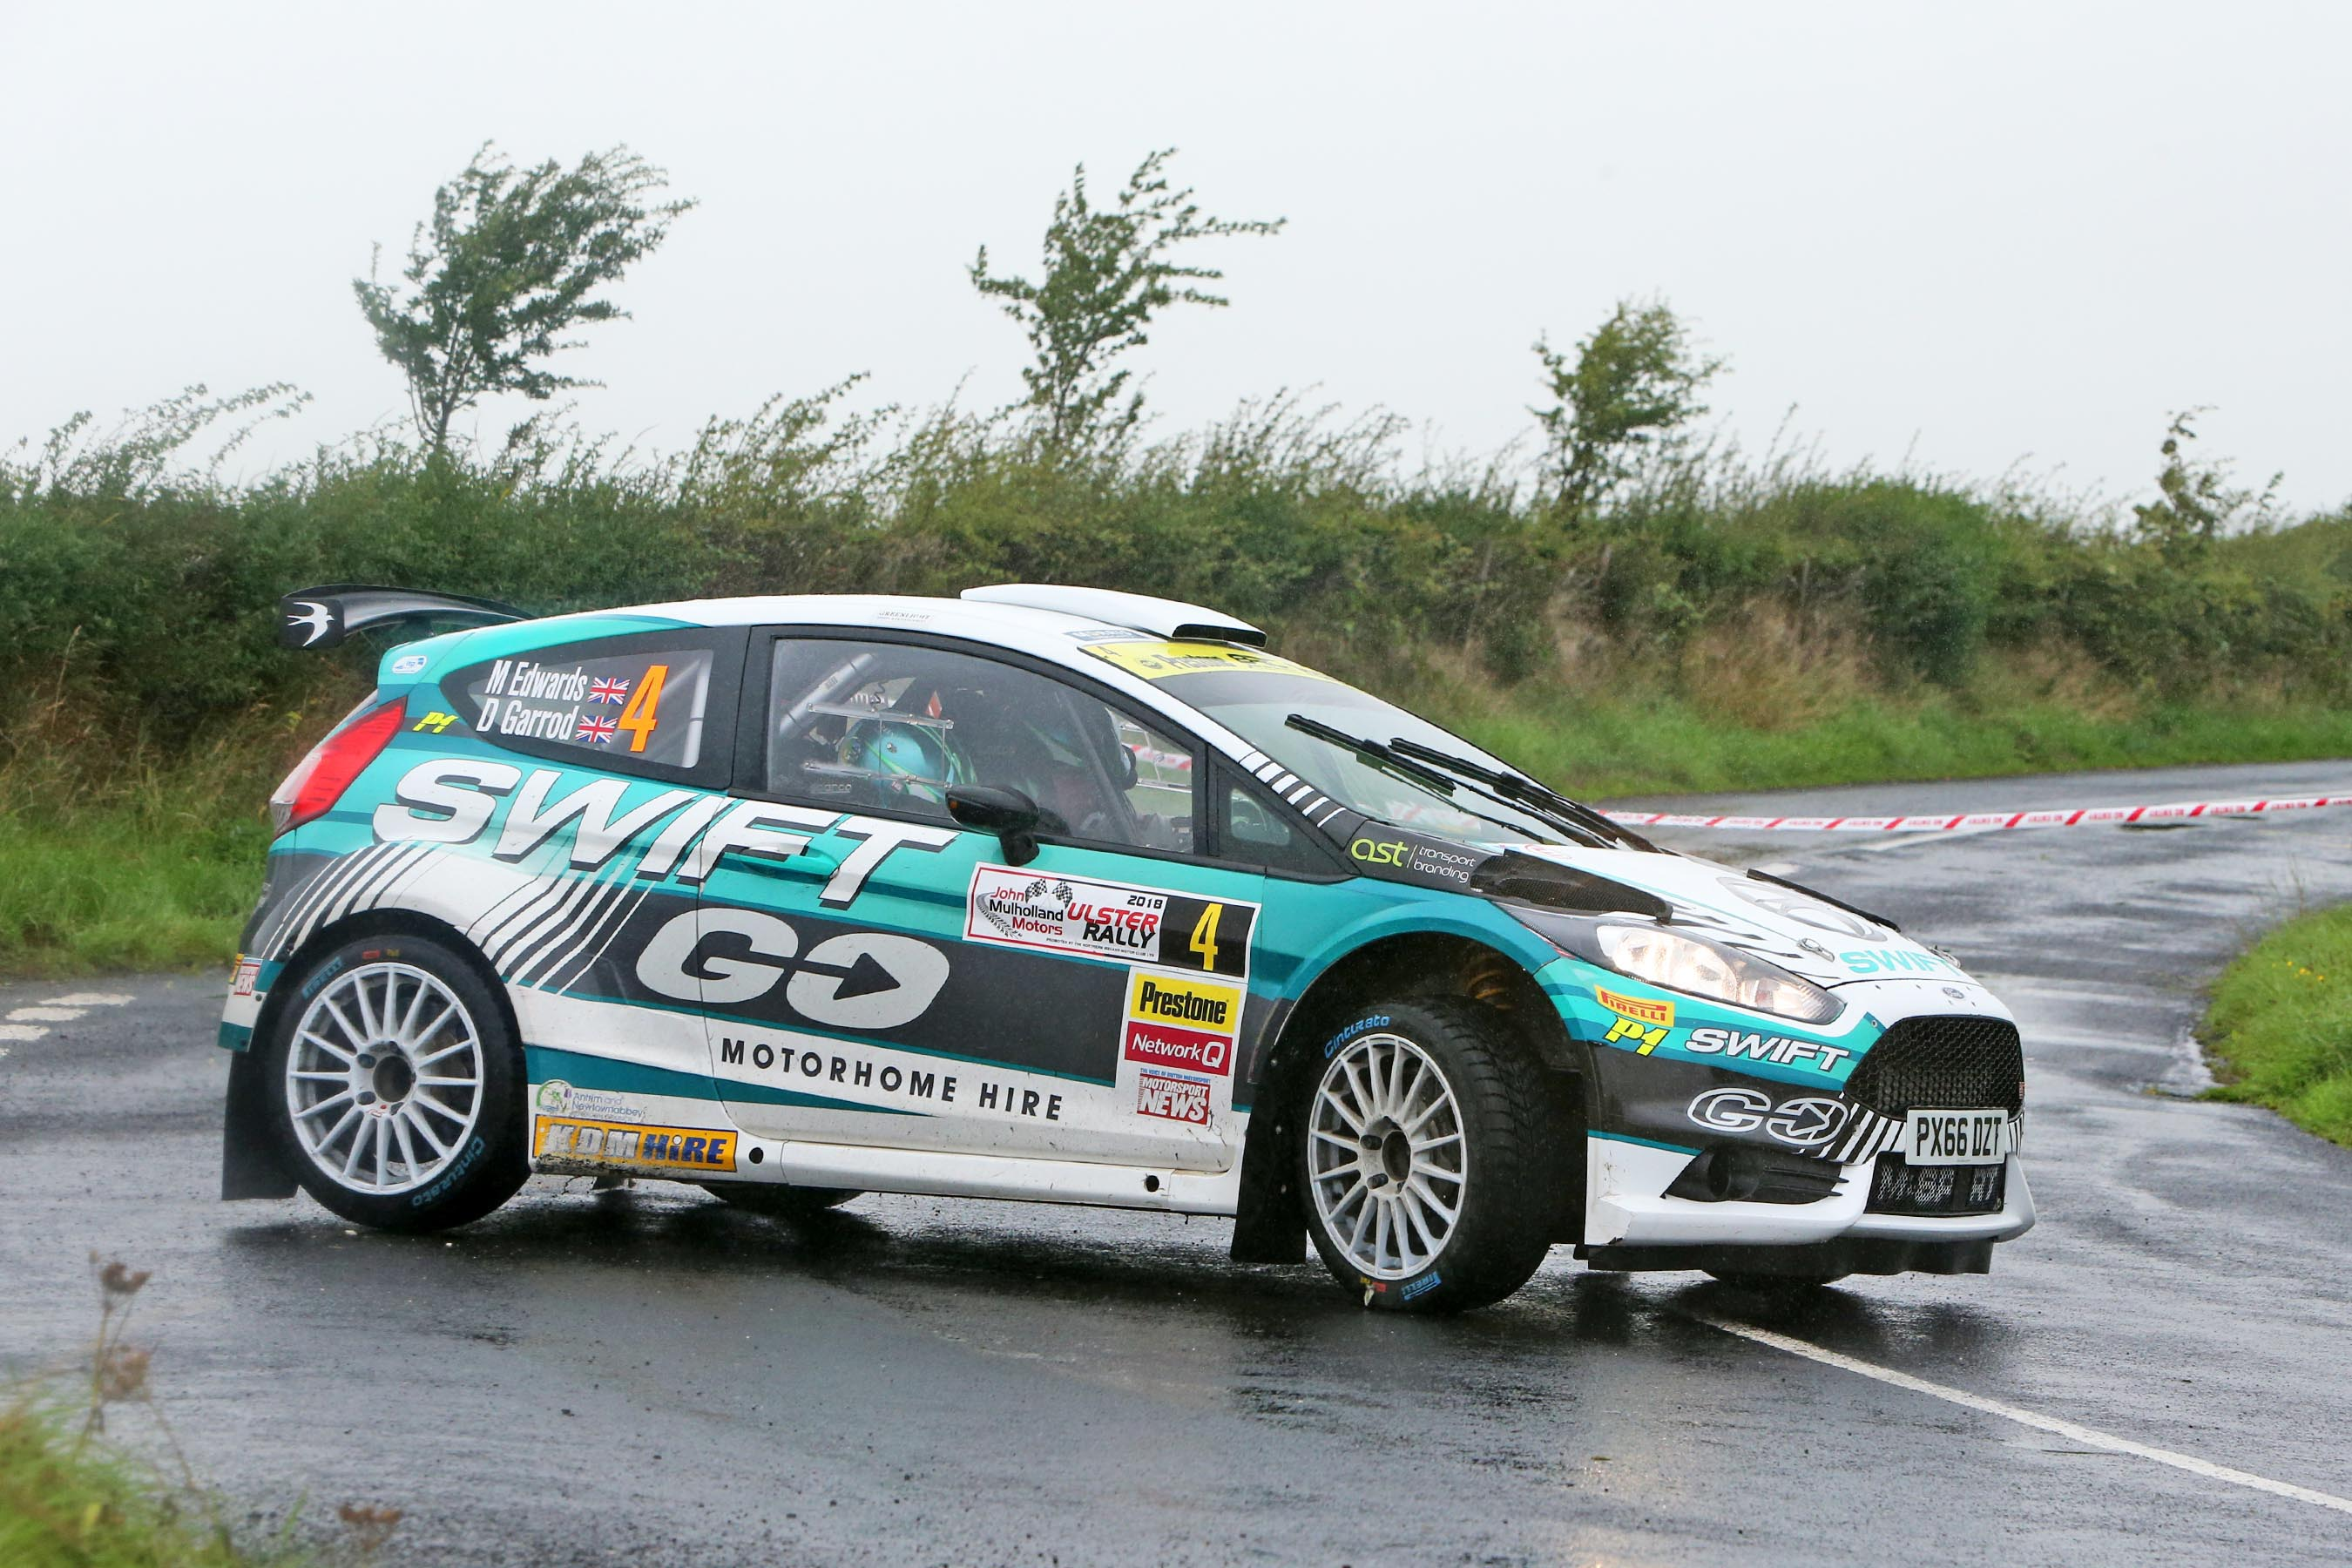 Edwards battles it out to clinch victory in a challenging